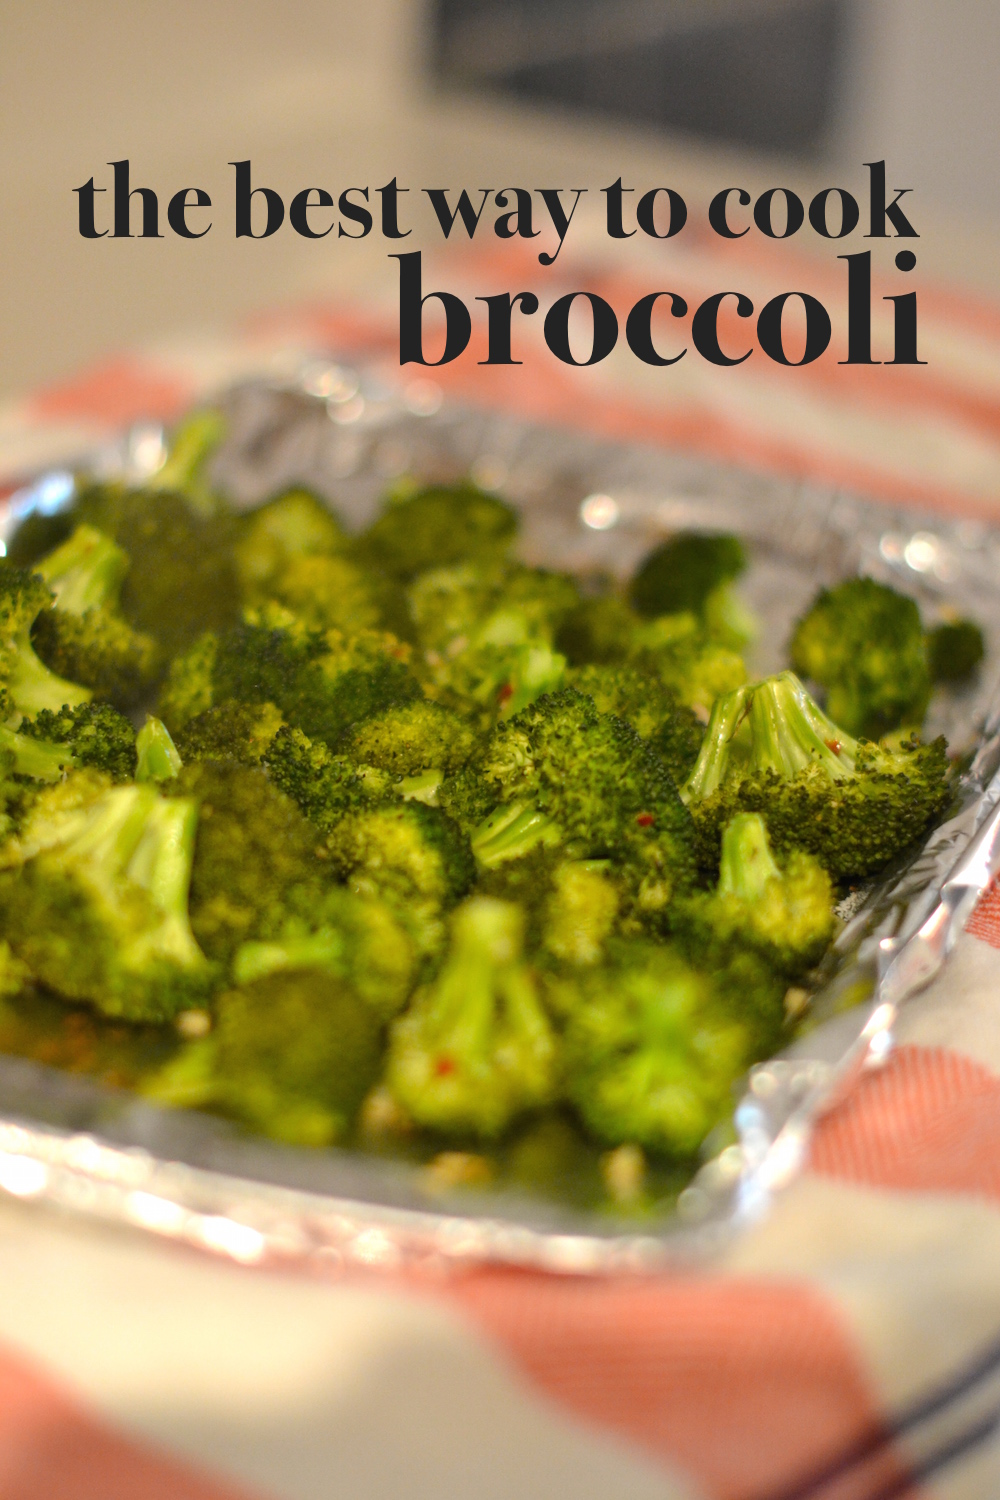 the best way to cook broccoli - roasted broccoli recipe // lovelyluckylife.com